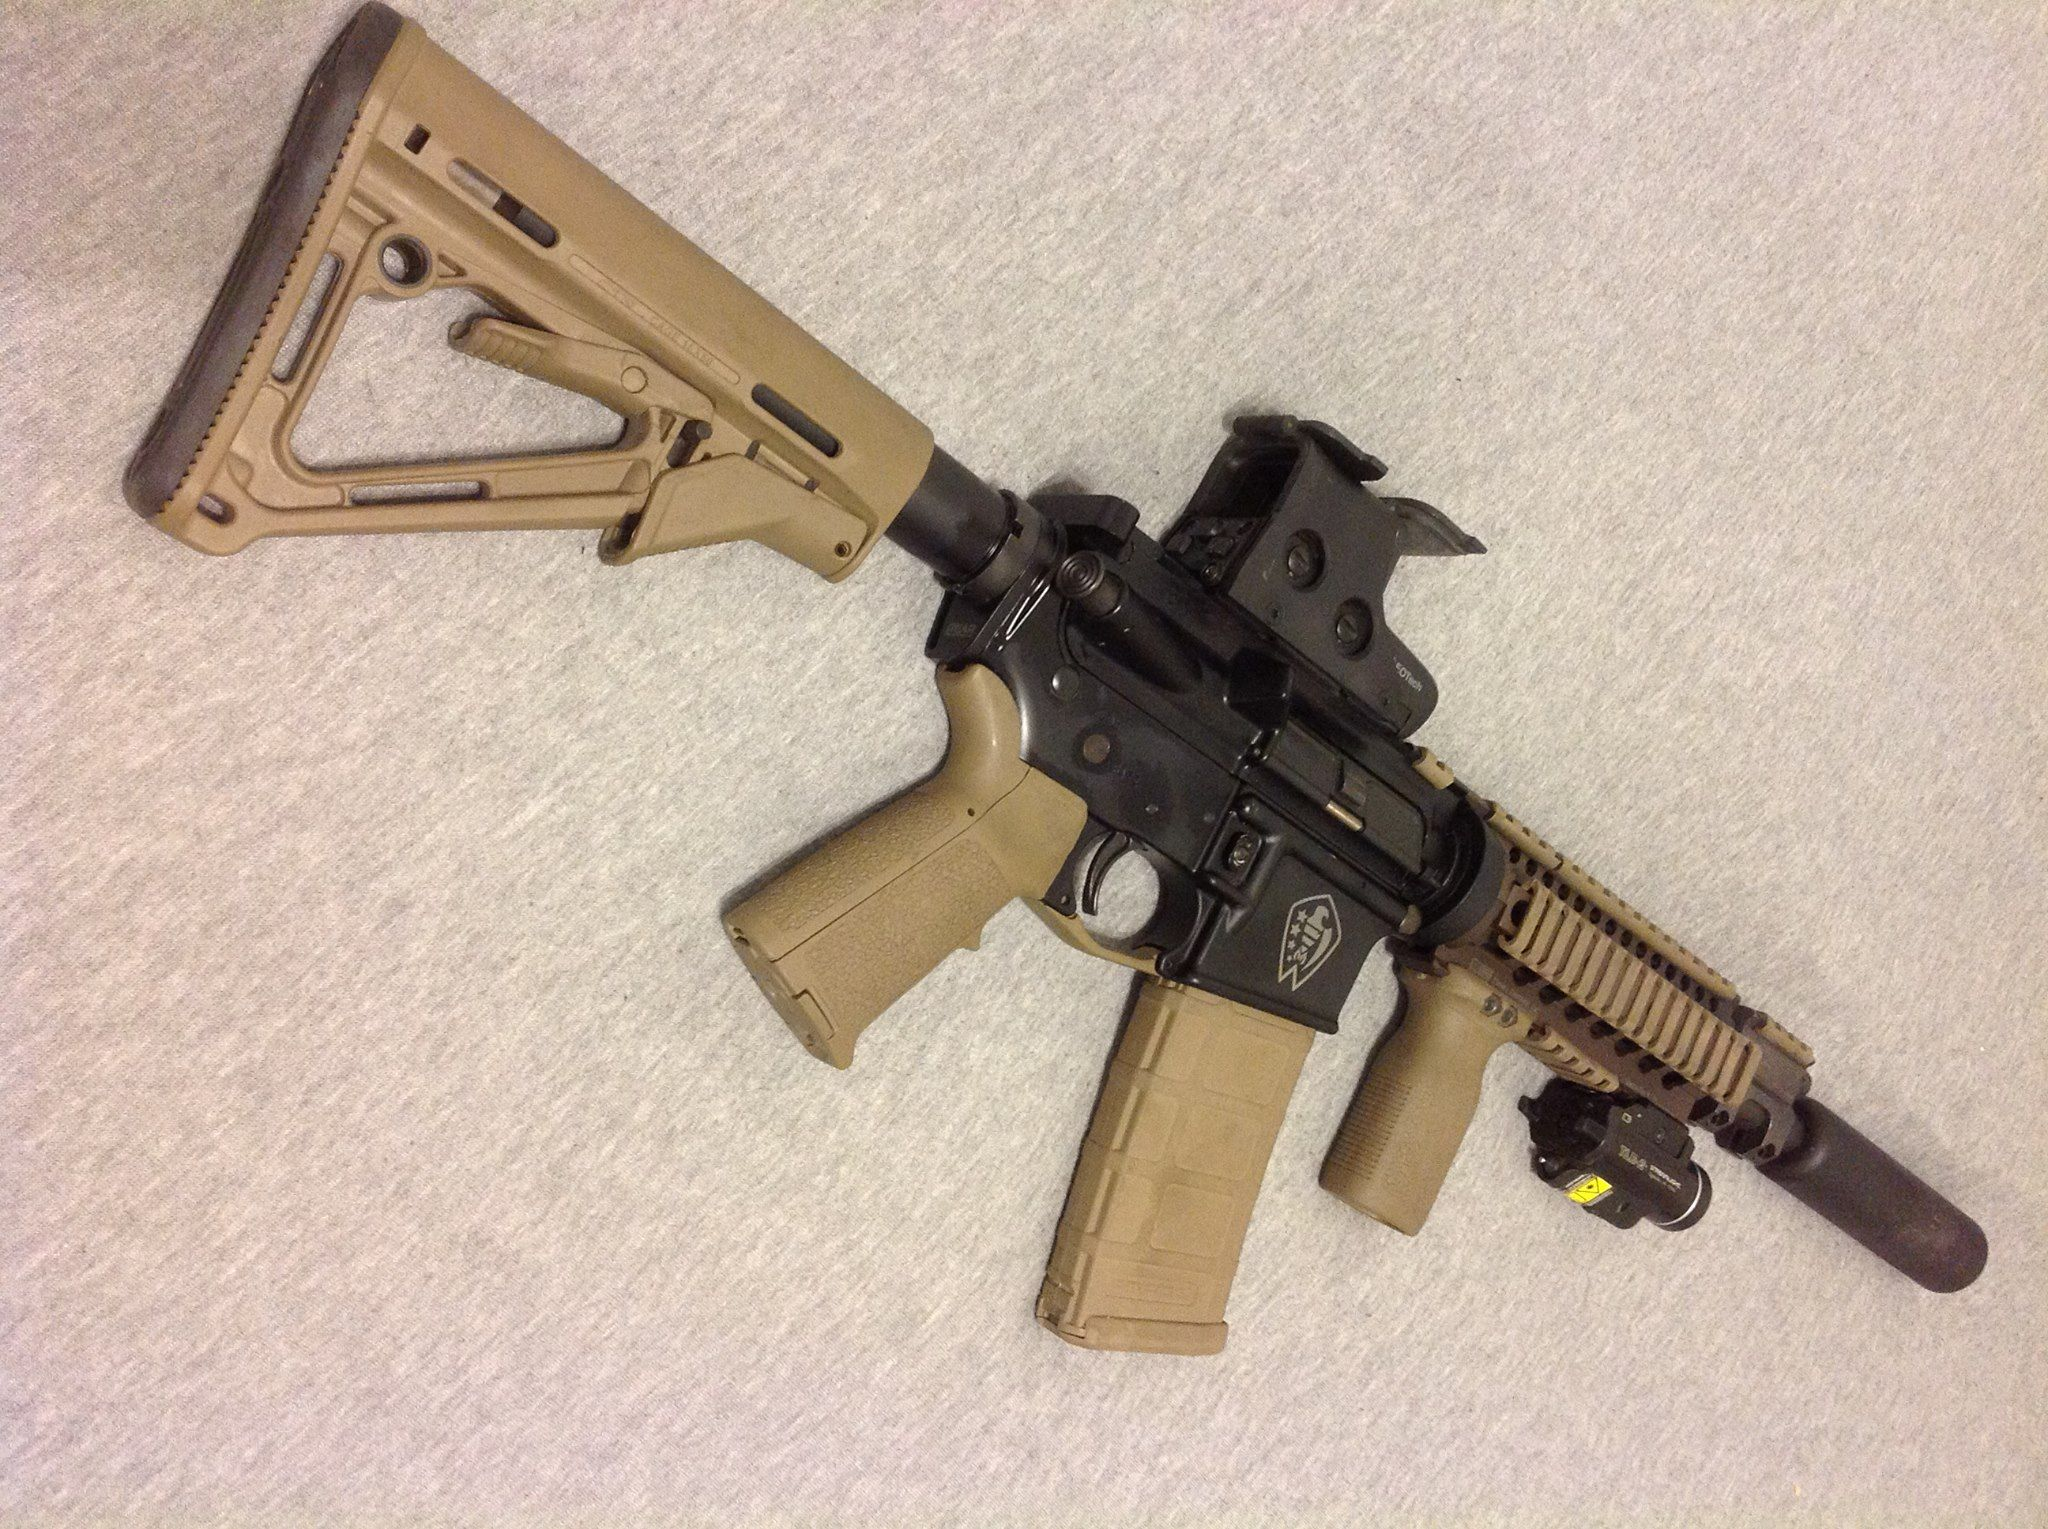 Pin on American Spirit Arms fan submissions Gun Gallery